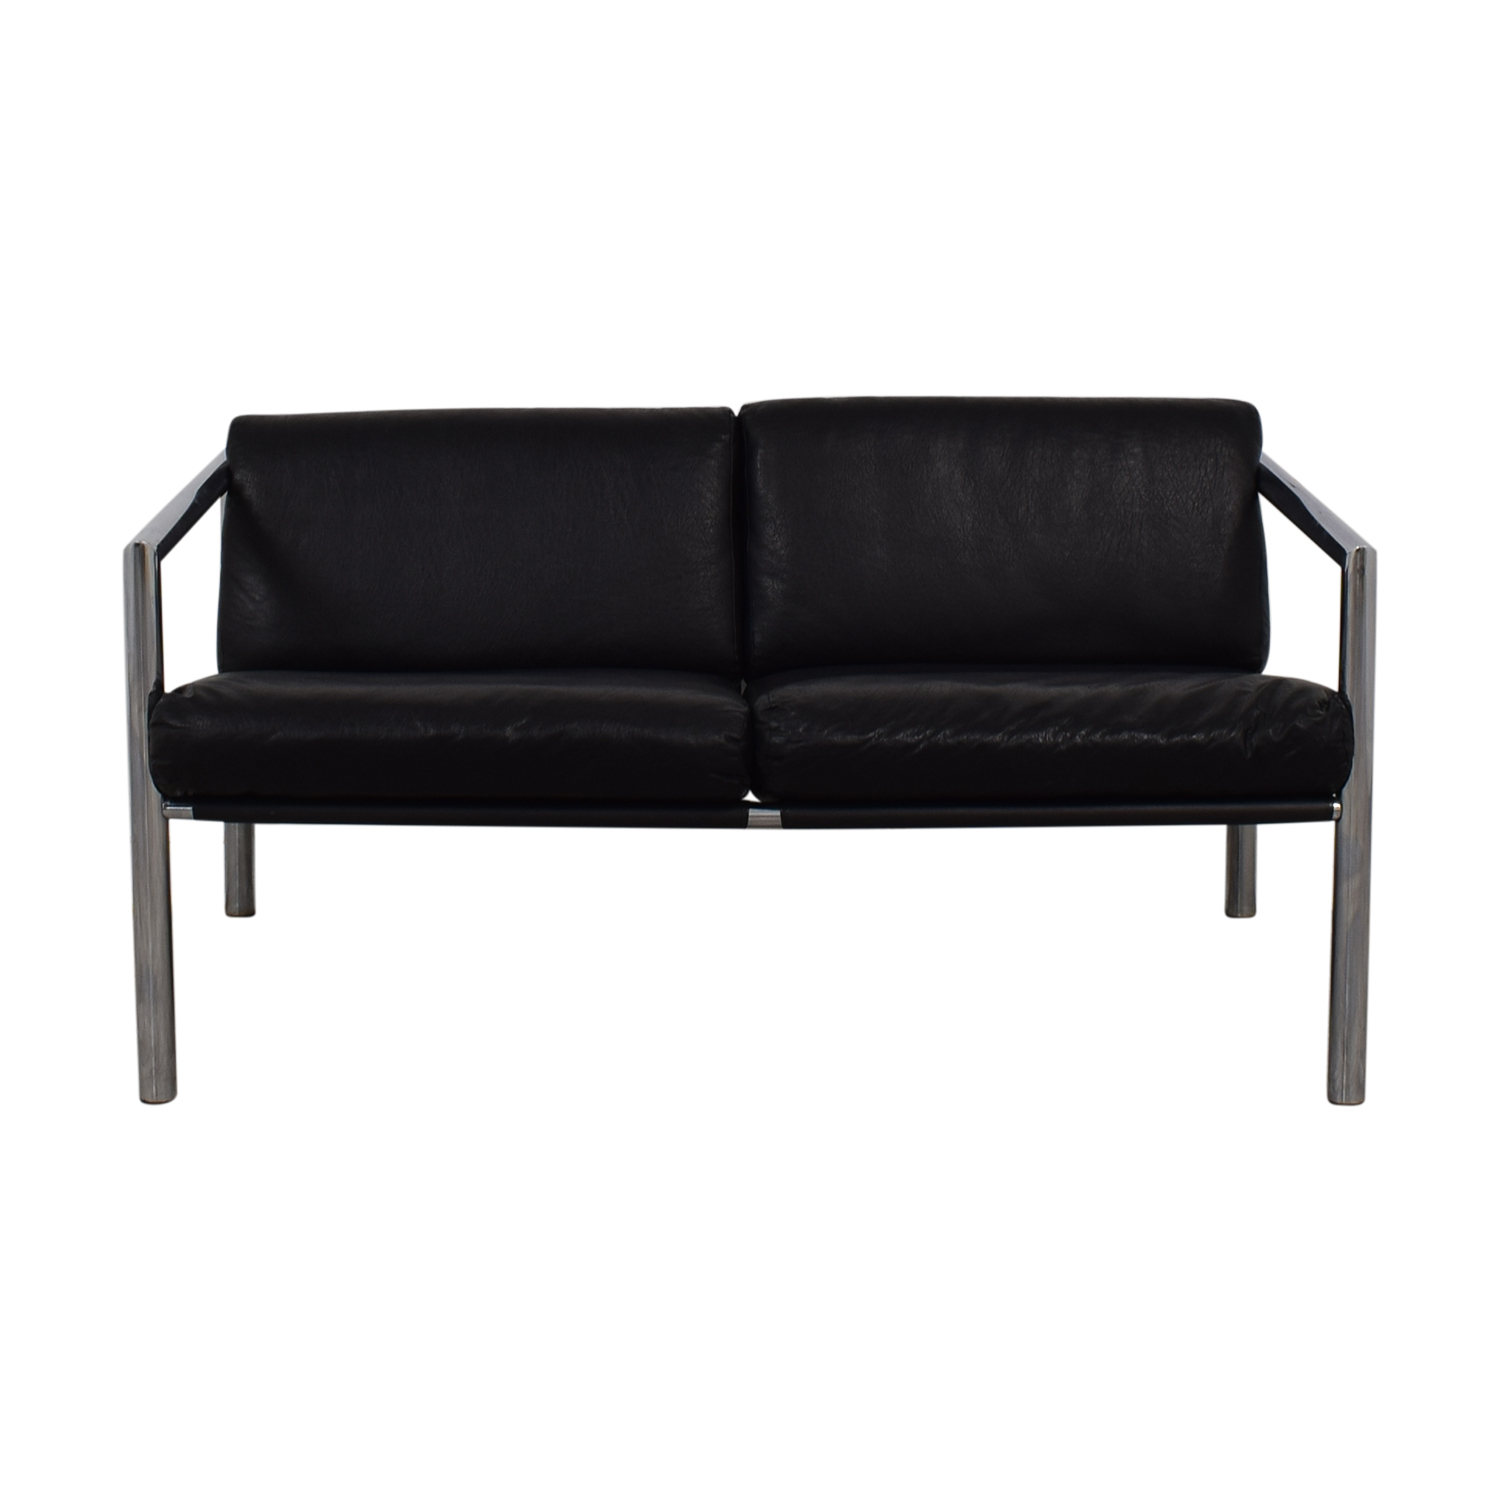 Black and Chrome Two-Cushion Minimalist Sofa Classic Sofas